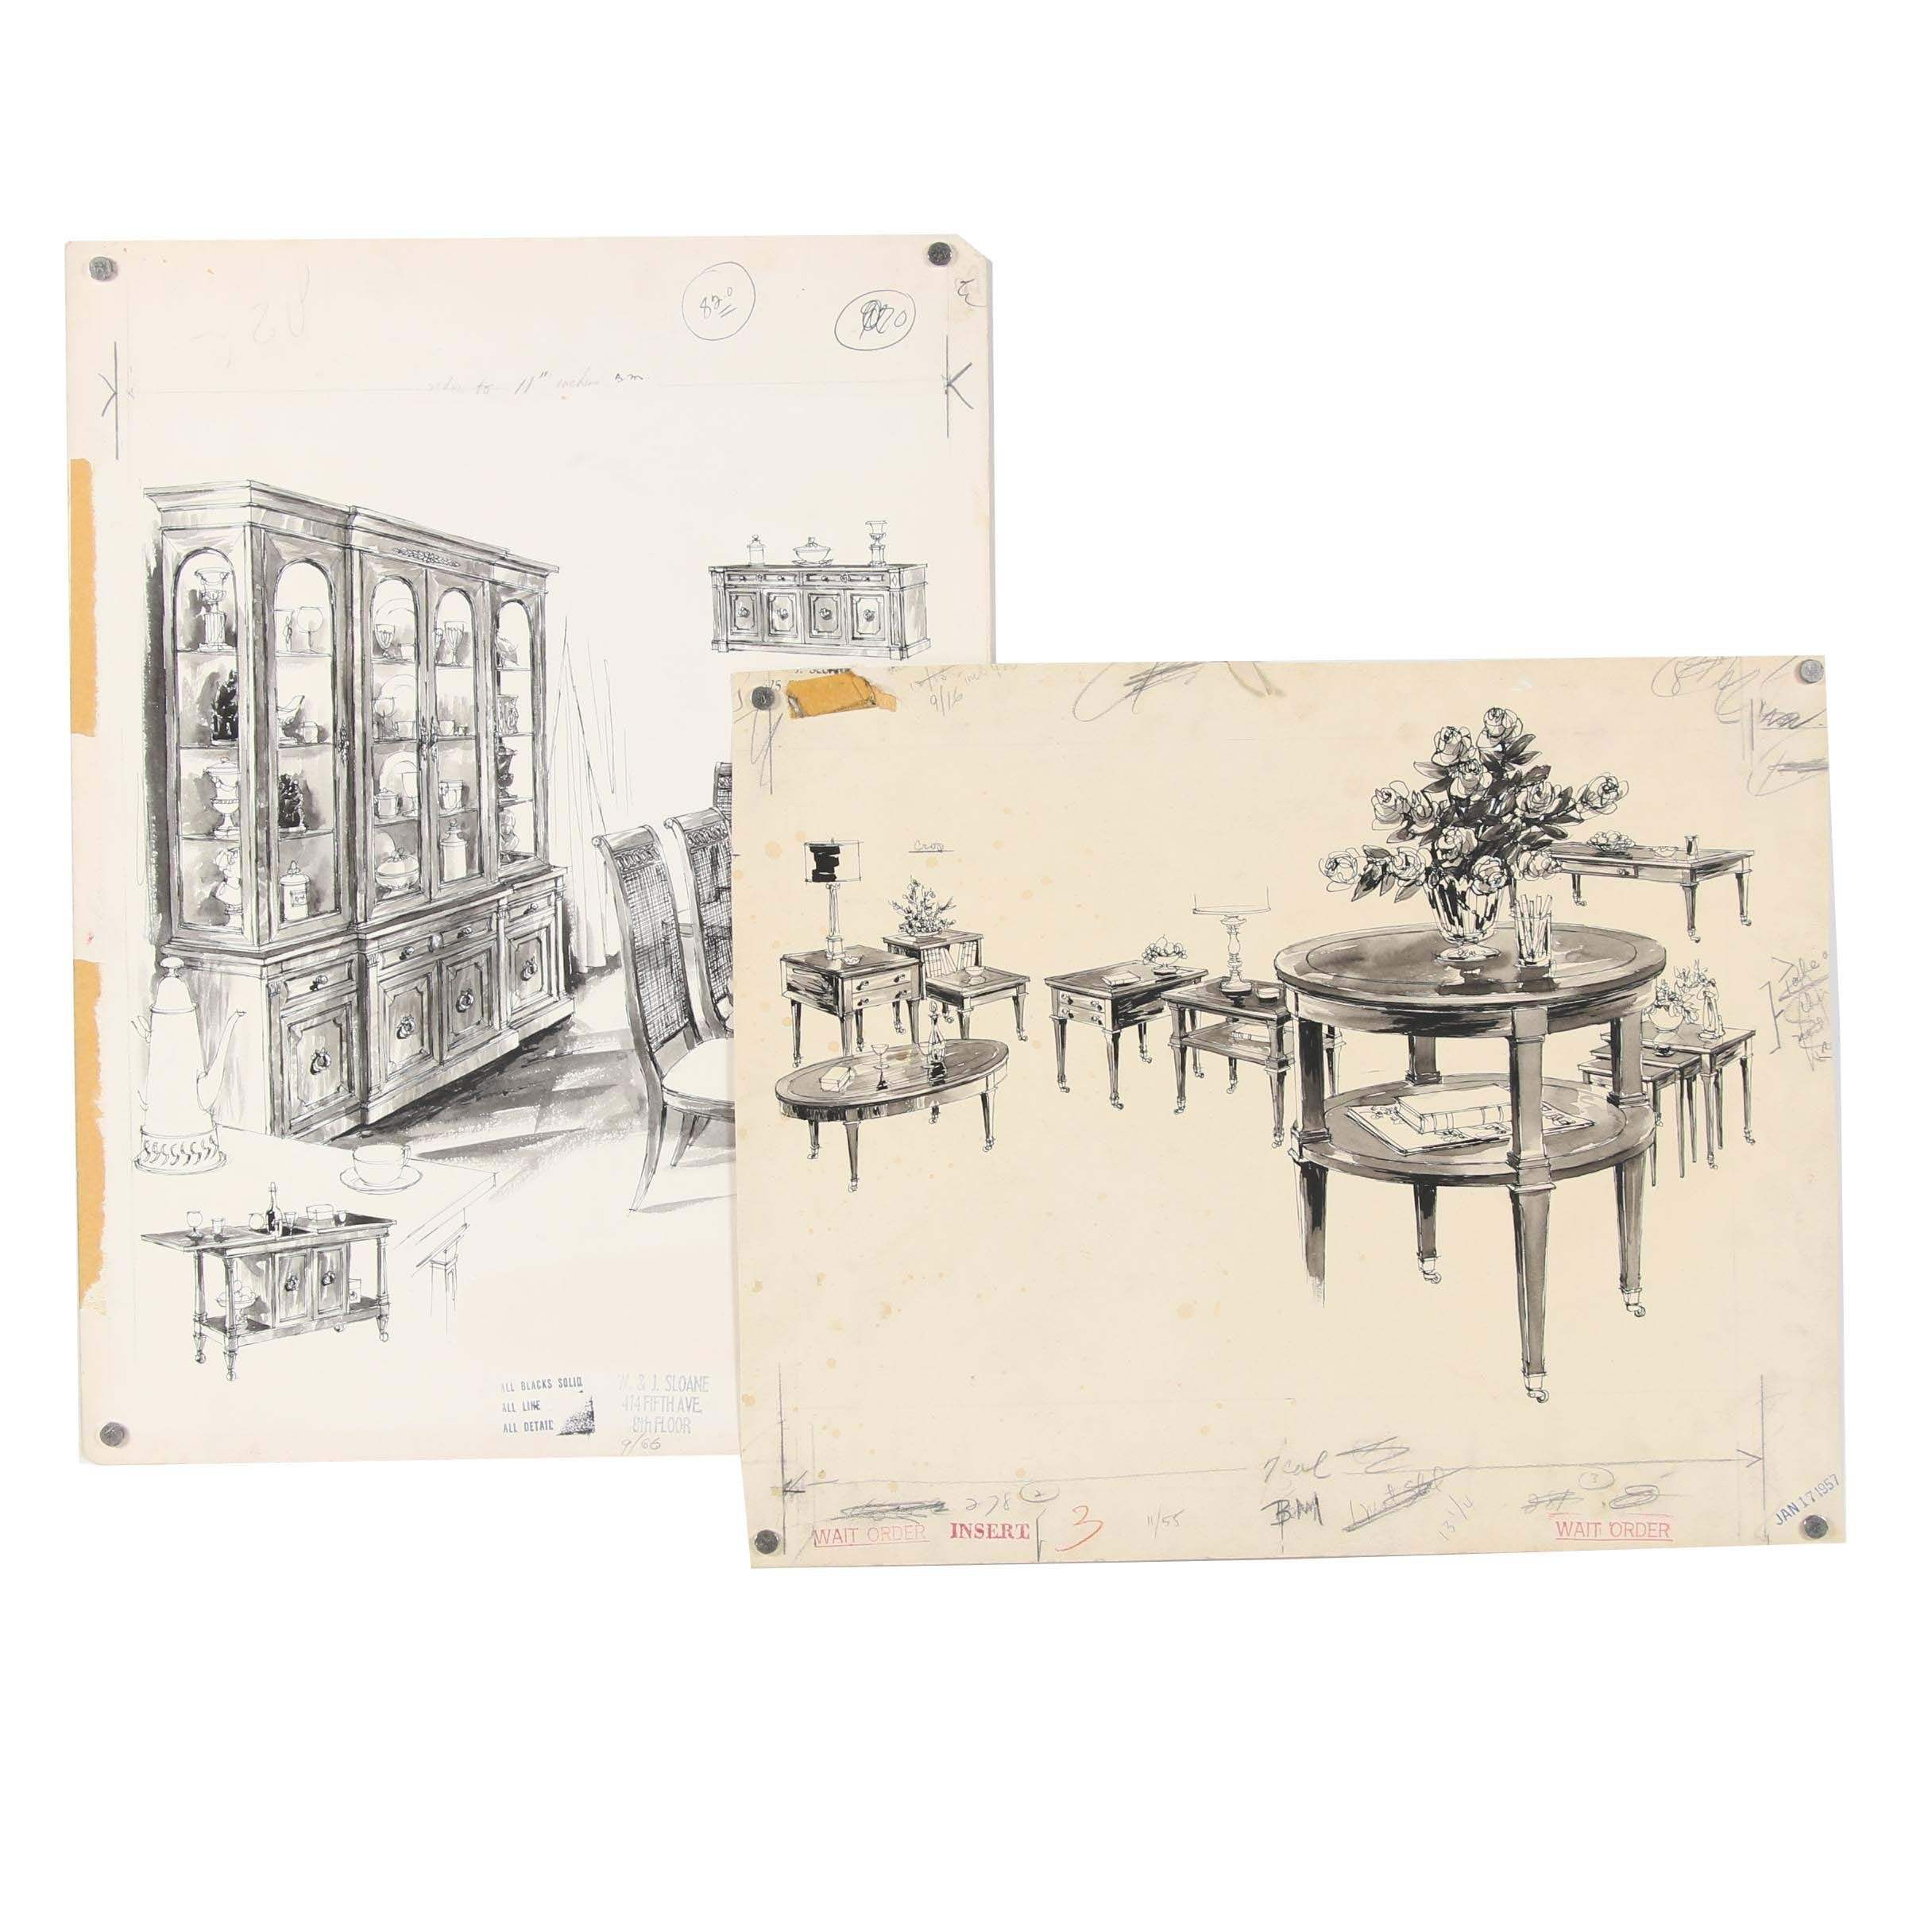 Max Walter Mid 20th Century Furniture Design Illustrations for W. & J. Sloane